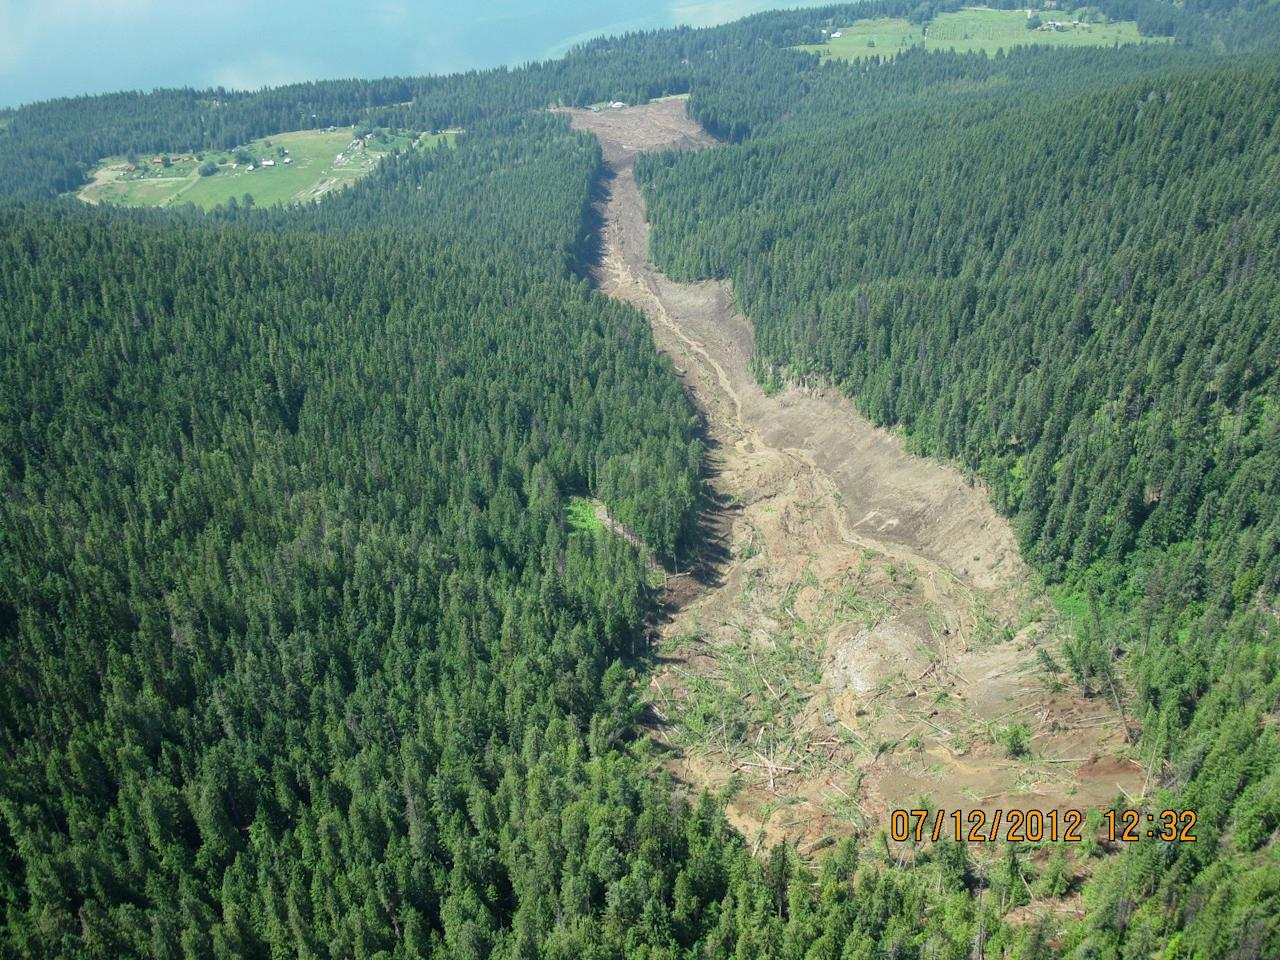 The Johnsons landing landslide is shown in this Thursday July 12, 2012 photo provided by Emergency BC. Four people are still unaccounted for nearly 24 hours after a wall of rock, mud and trees cascaded down the side of a mountain above the shores of Kootenay Lake, tearing through the tiny community of Johnsons Landing, about 70 kilometres northeast of Nelson. At least three homes in the southeastern B.C. hamlet are engulfed by the muck, which is unstable and shifting, prompting searchers to call off rescue efforts at least once on Thursday afternoon. Emergency crews met at dawn Friday to consider the most efficient and effective way to search the massive mudslide for possible victims. (AP Photo/Emergency BC via The Canadian Press) HANDOUT PHOTO; ONE TIME USE ONLY; NO ARCHIVES; NOT FOR RESALE